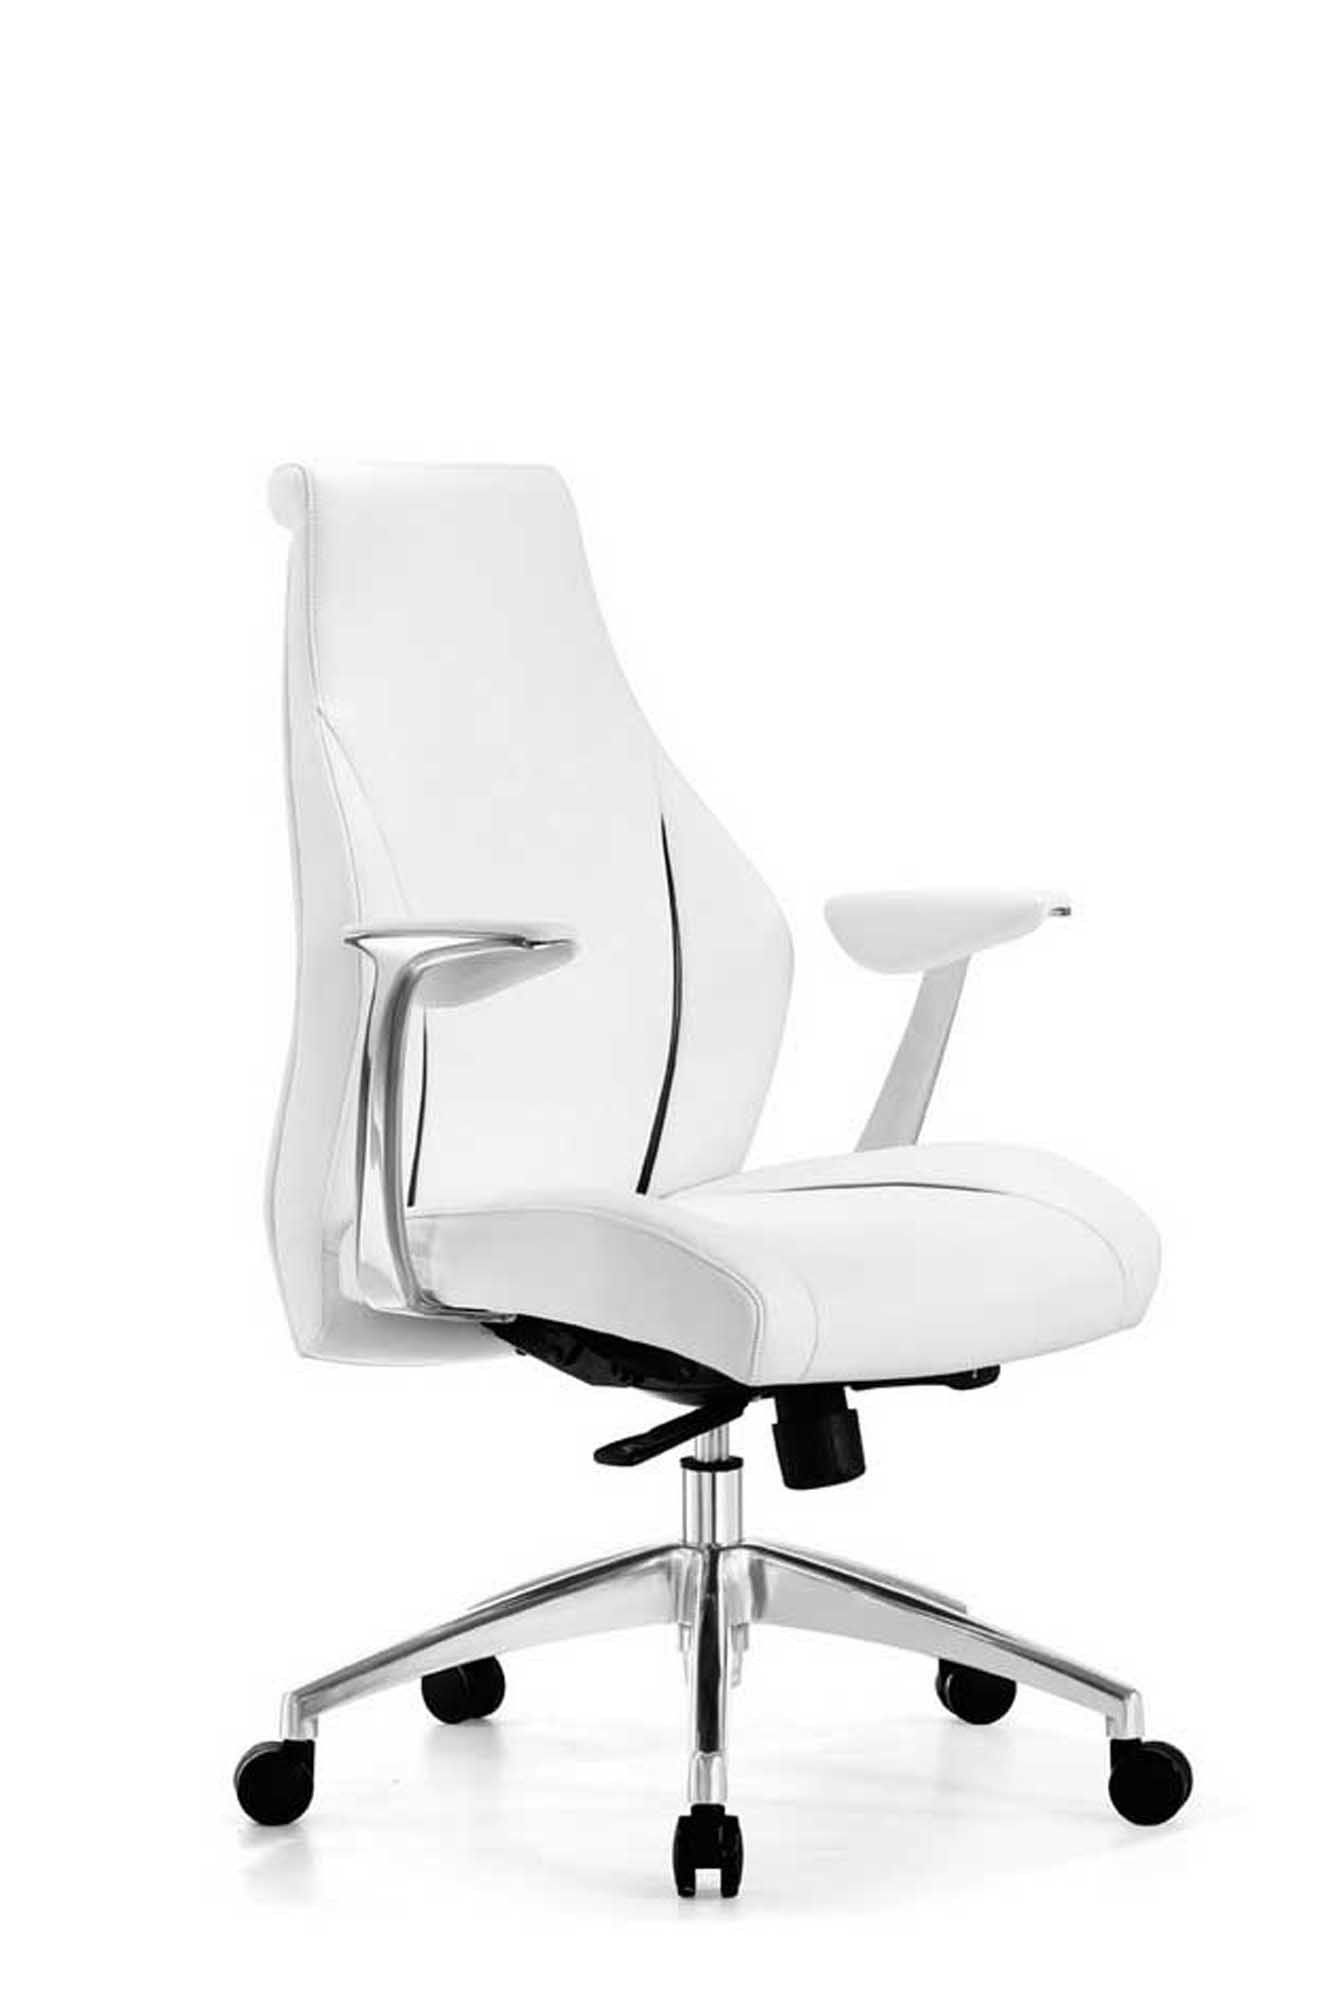 Whiteline Stanford Low Back Office Chair White Office Chair Office Chair Black Office Chair